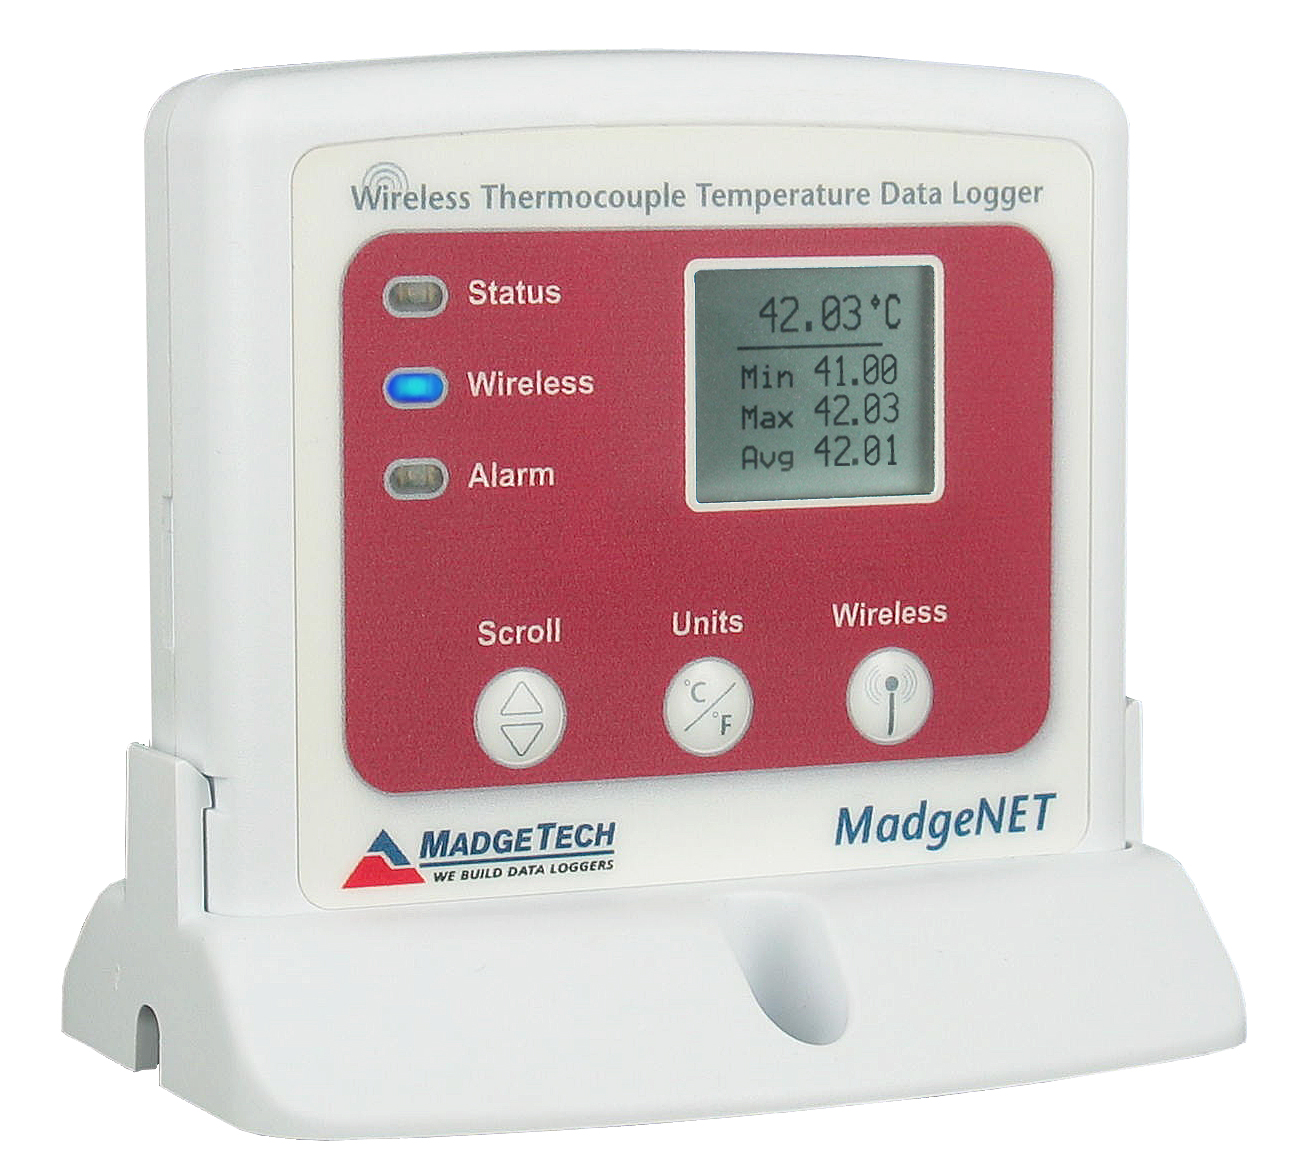 MATREC142: Wireless Thermocouple Temperature Data Logger